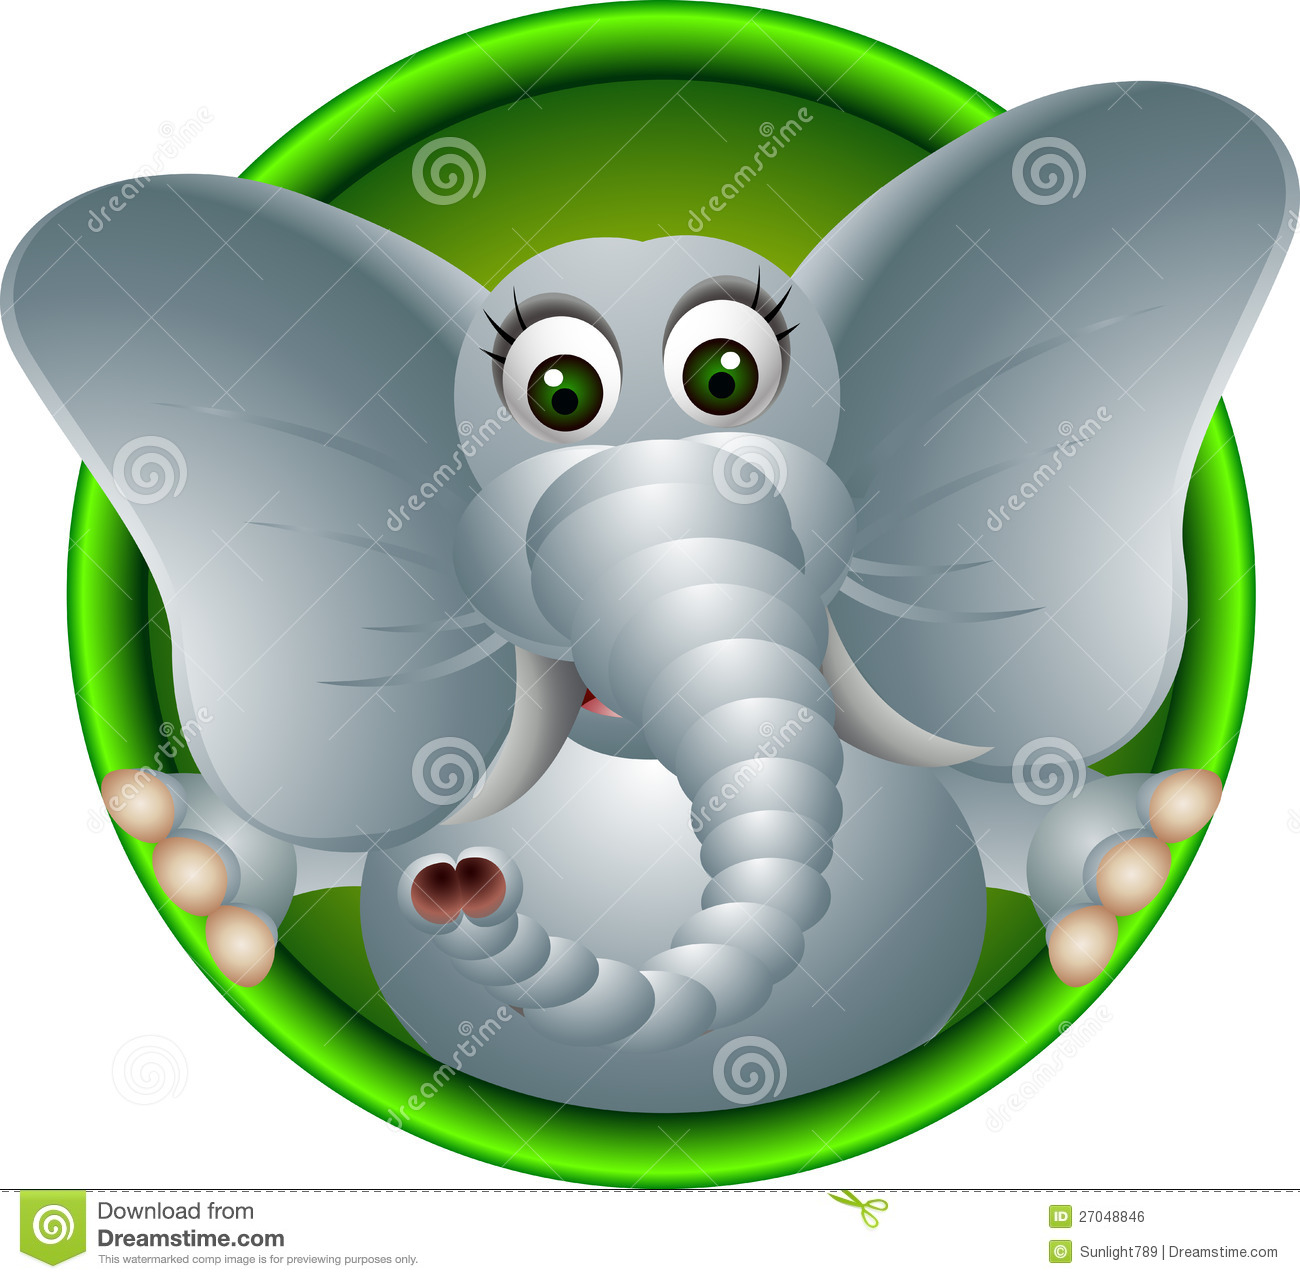 Cute Elephant Cartoon Royalty Free Stock Image - Image: 27048846